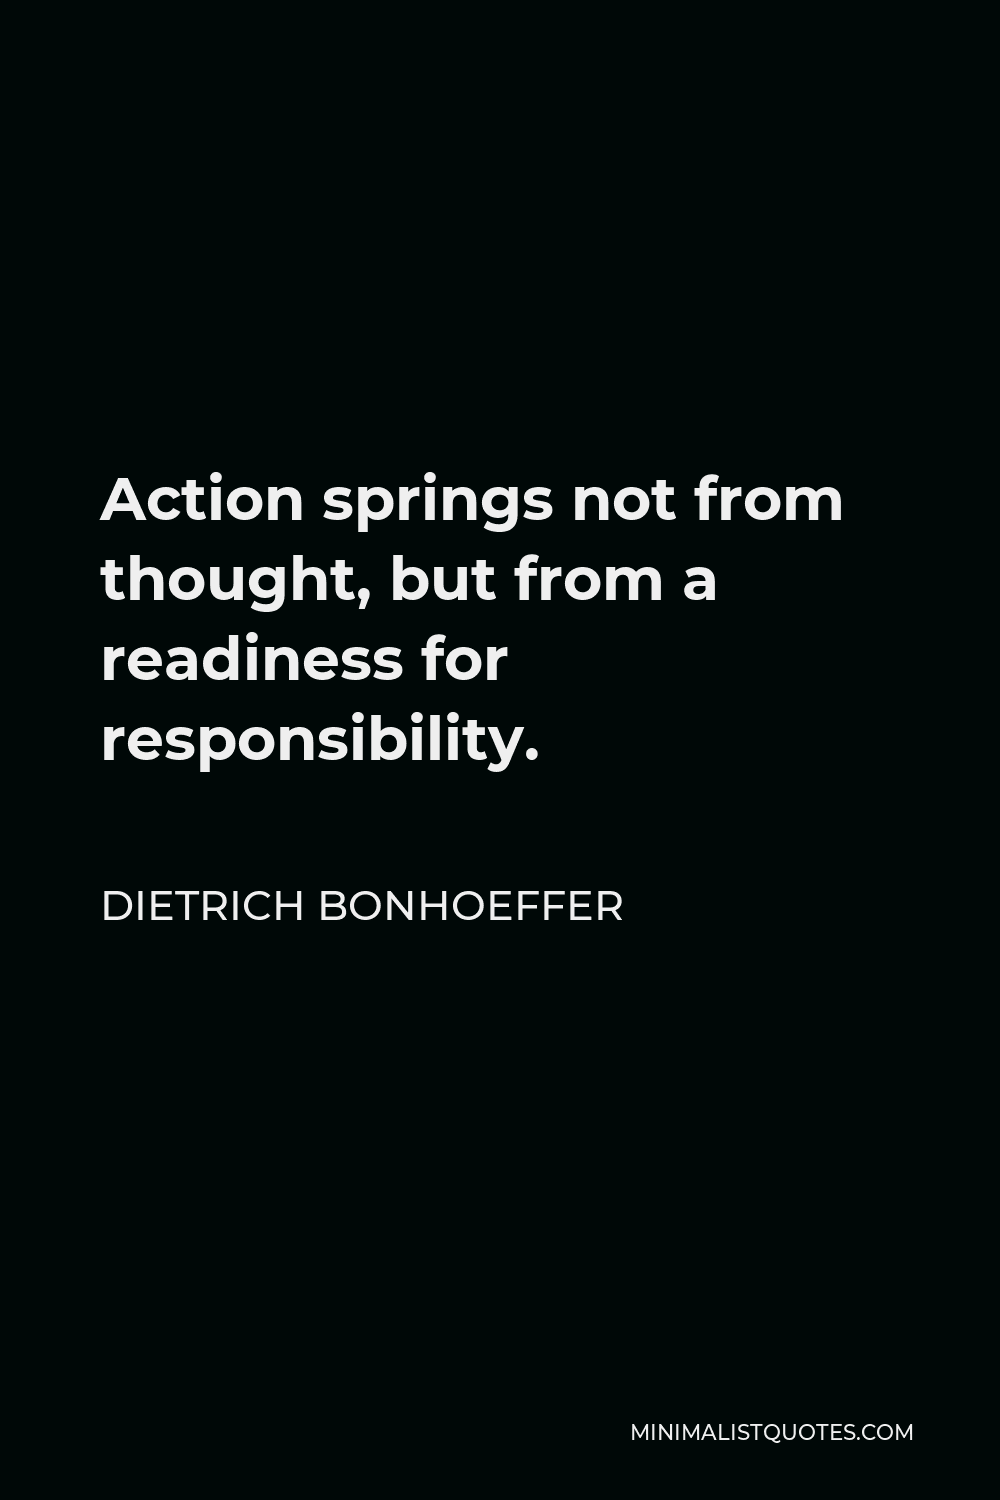 Dietrich Bonhoeffer Quote - Action springs not from thought, but from a readiness for responsibility.